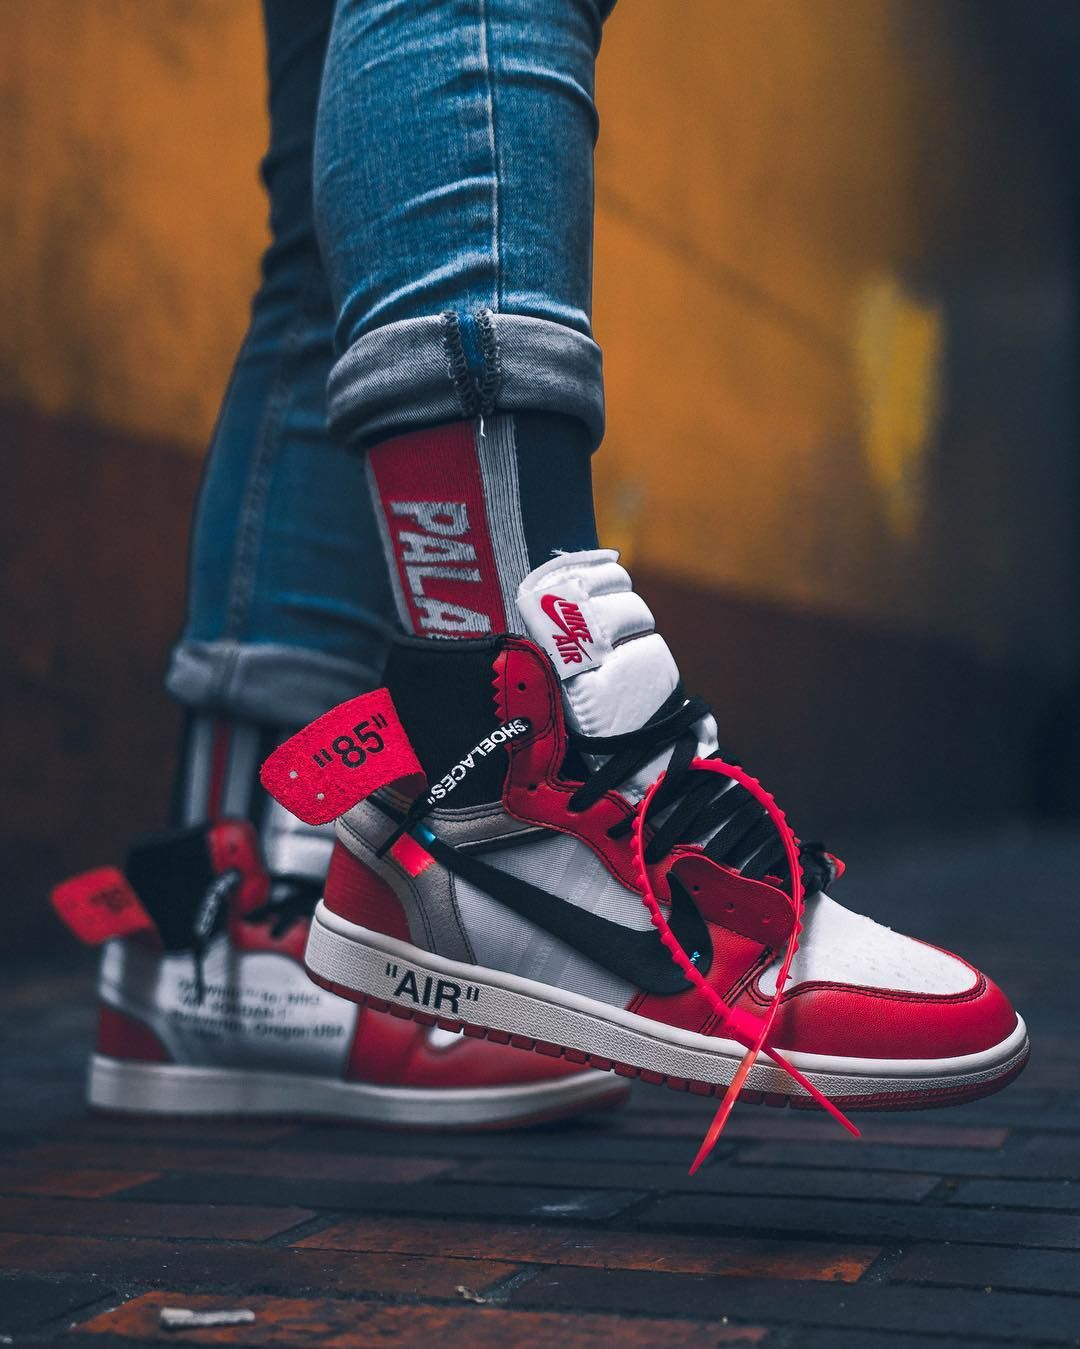 73eaa1fe7a25e OFF-WHITE x Air Jordan 1 | Cute outfits | Sneakers fashion, Air ...